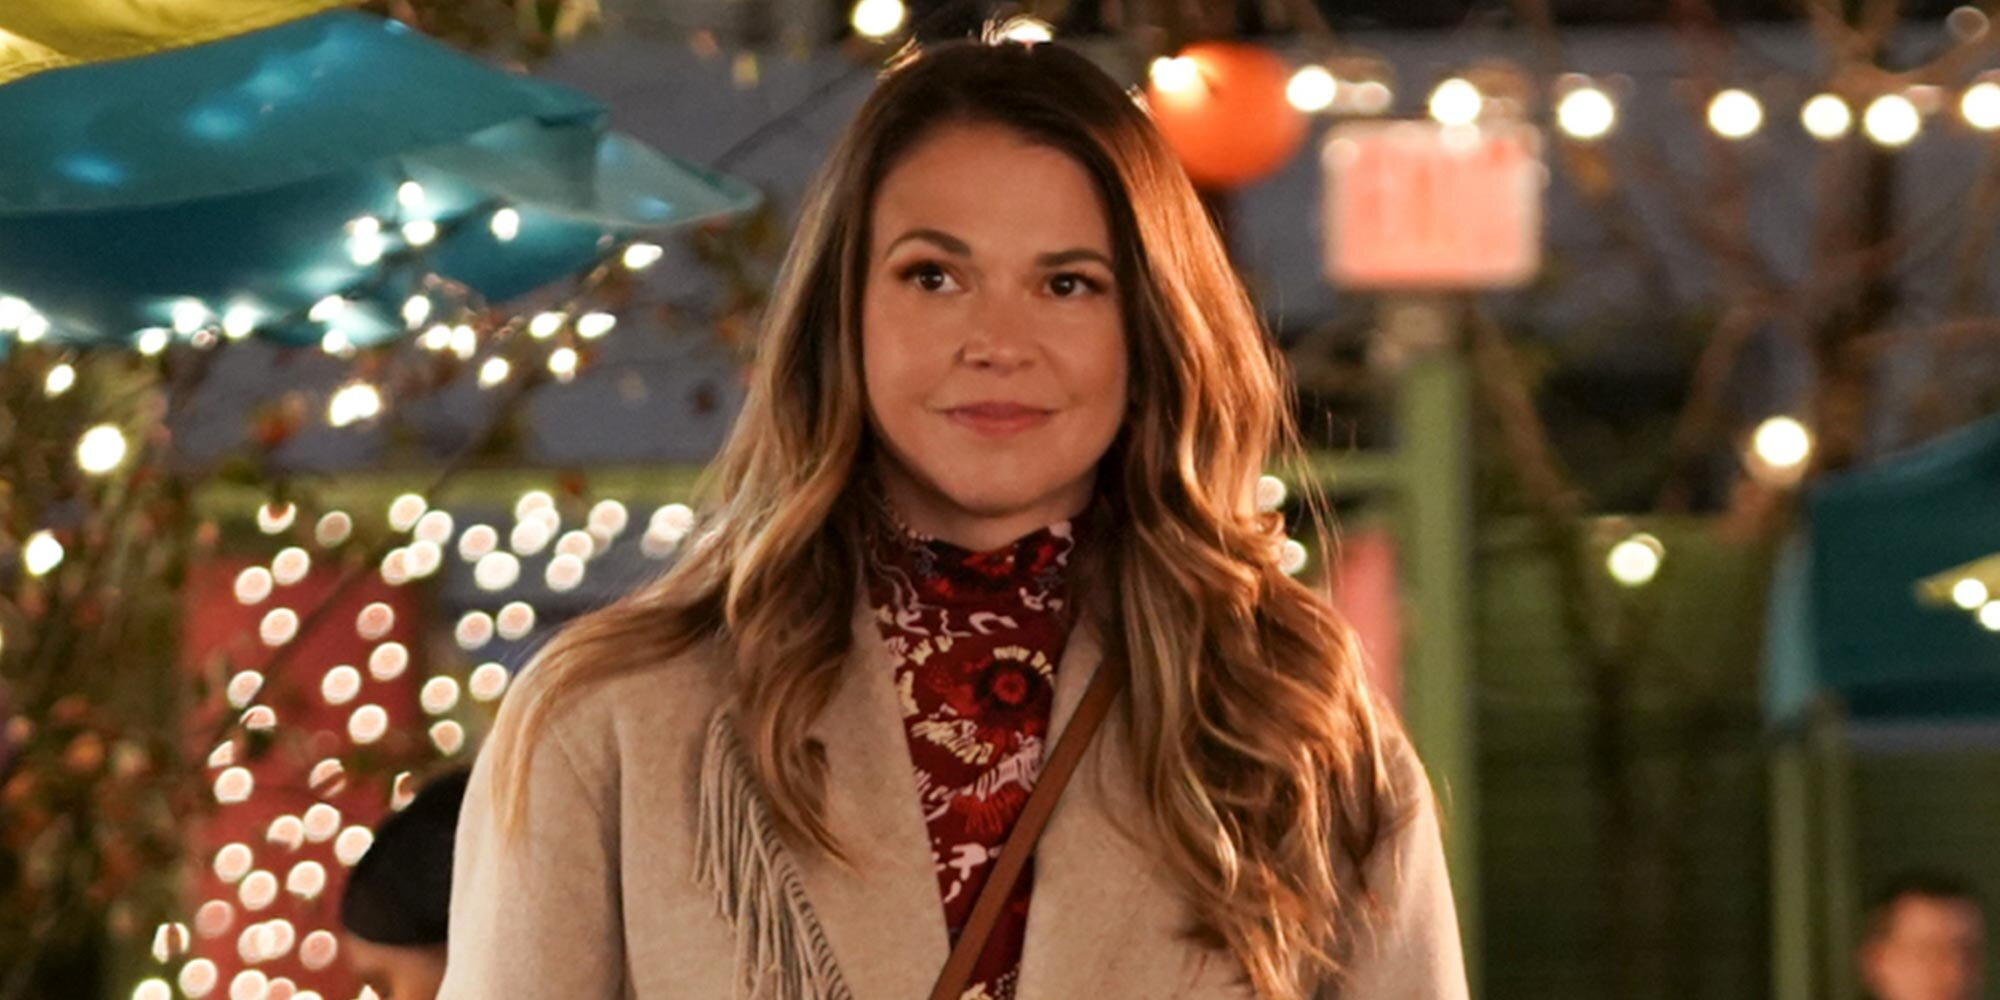 Sutton Foster shares what she'll miss most about 'Younger': 'We just had such a great time'